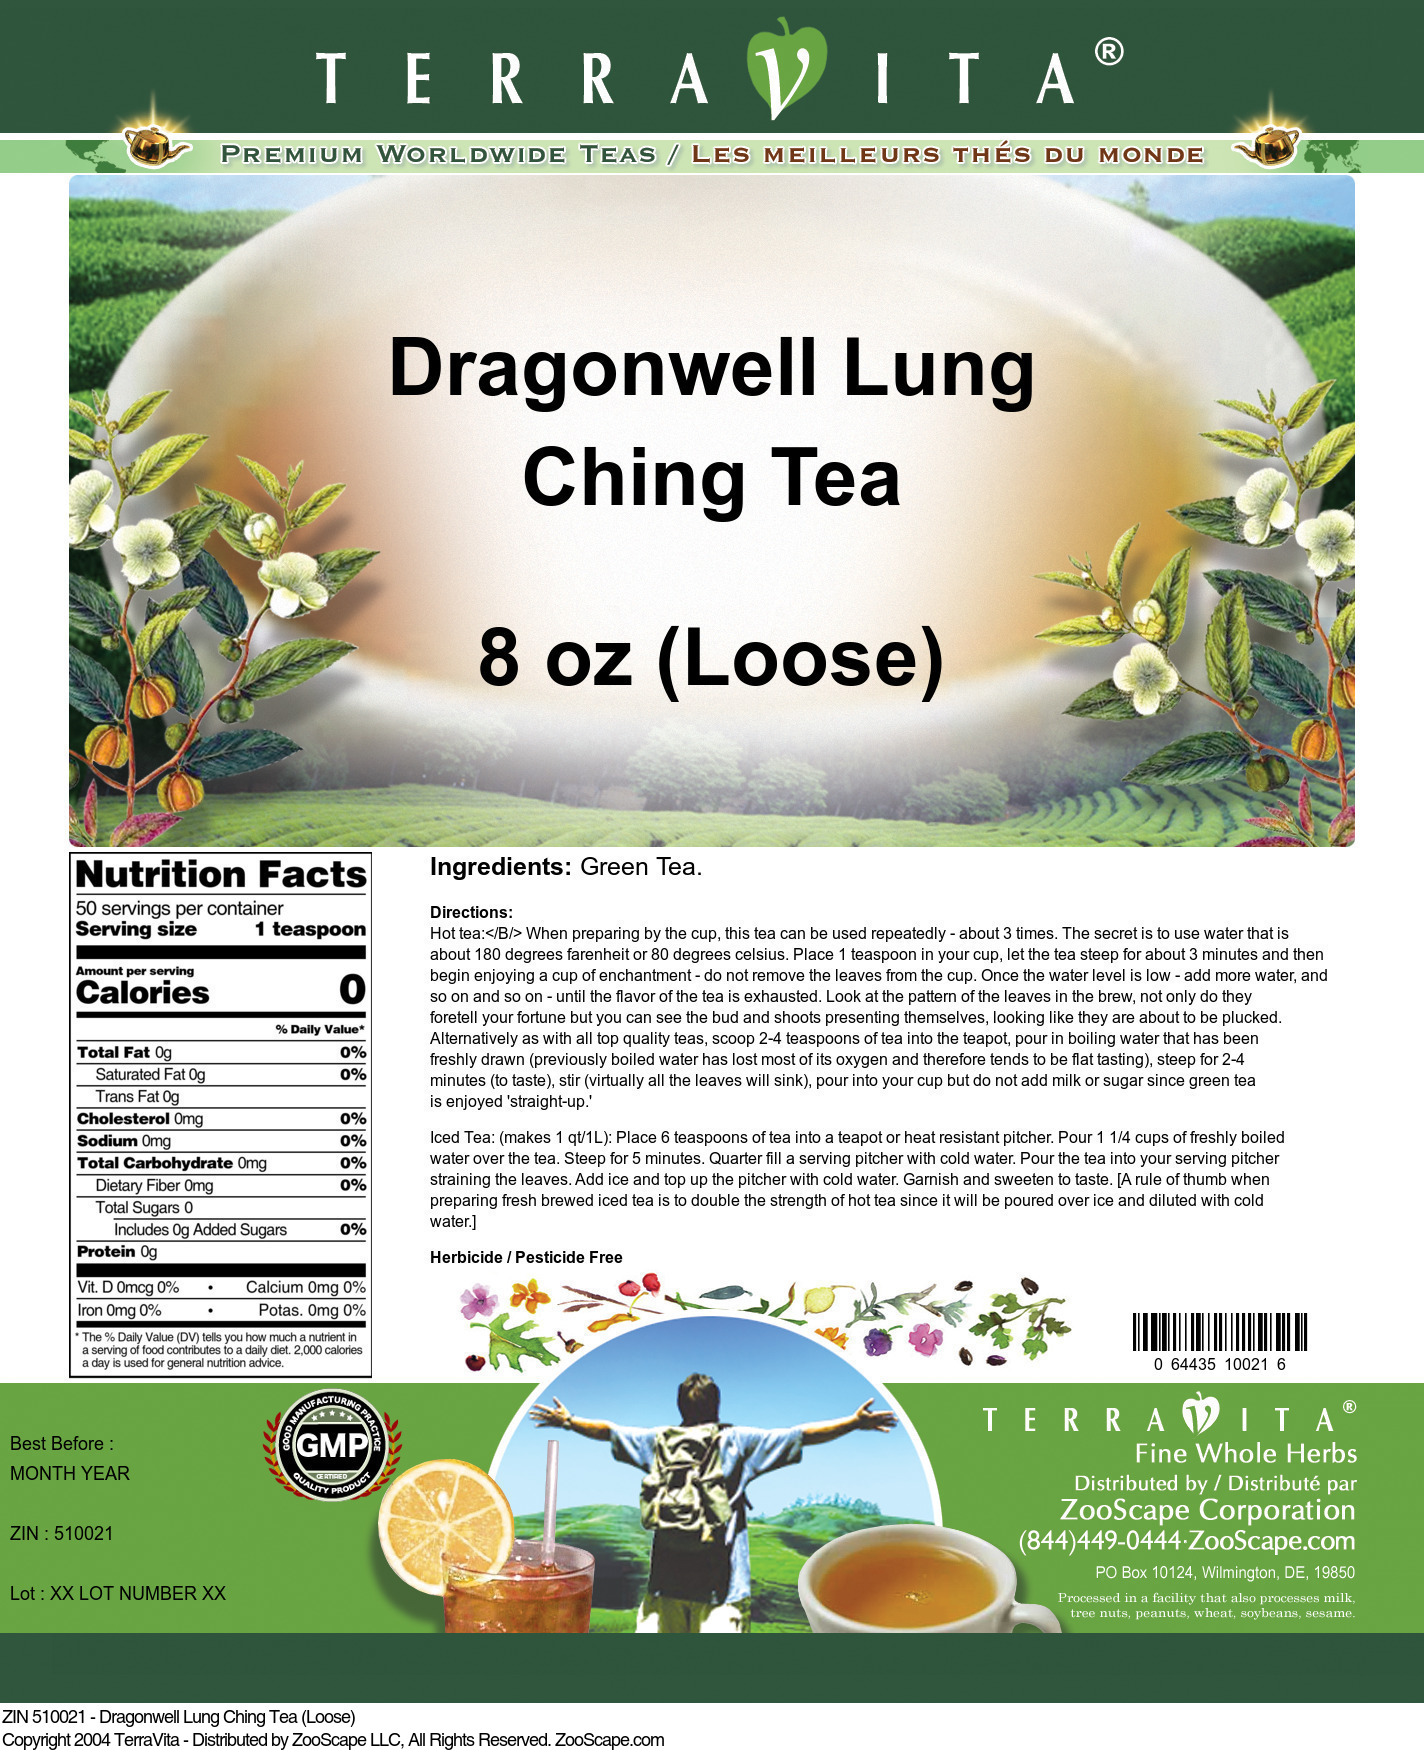 Dragonwell Lung Ching Tea (Loose)